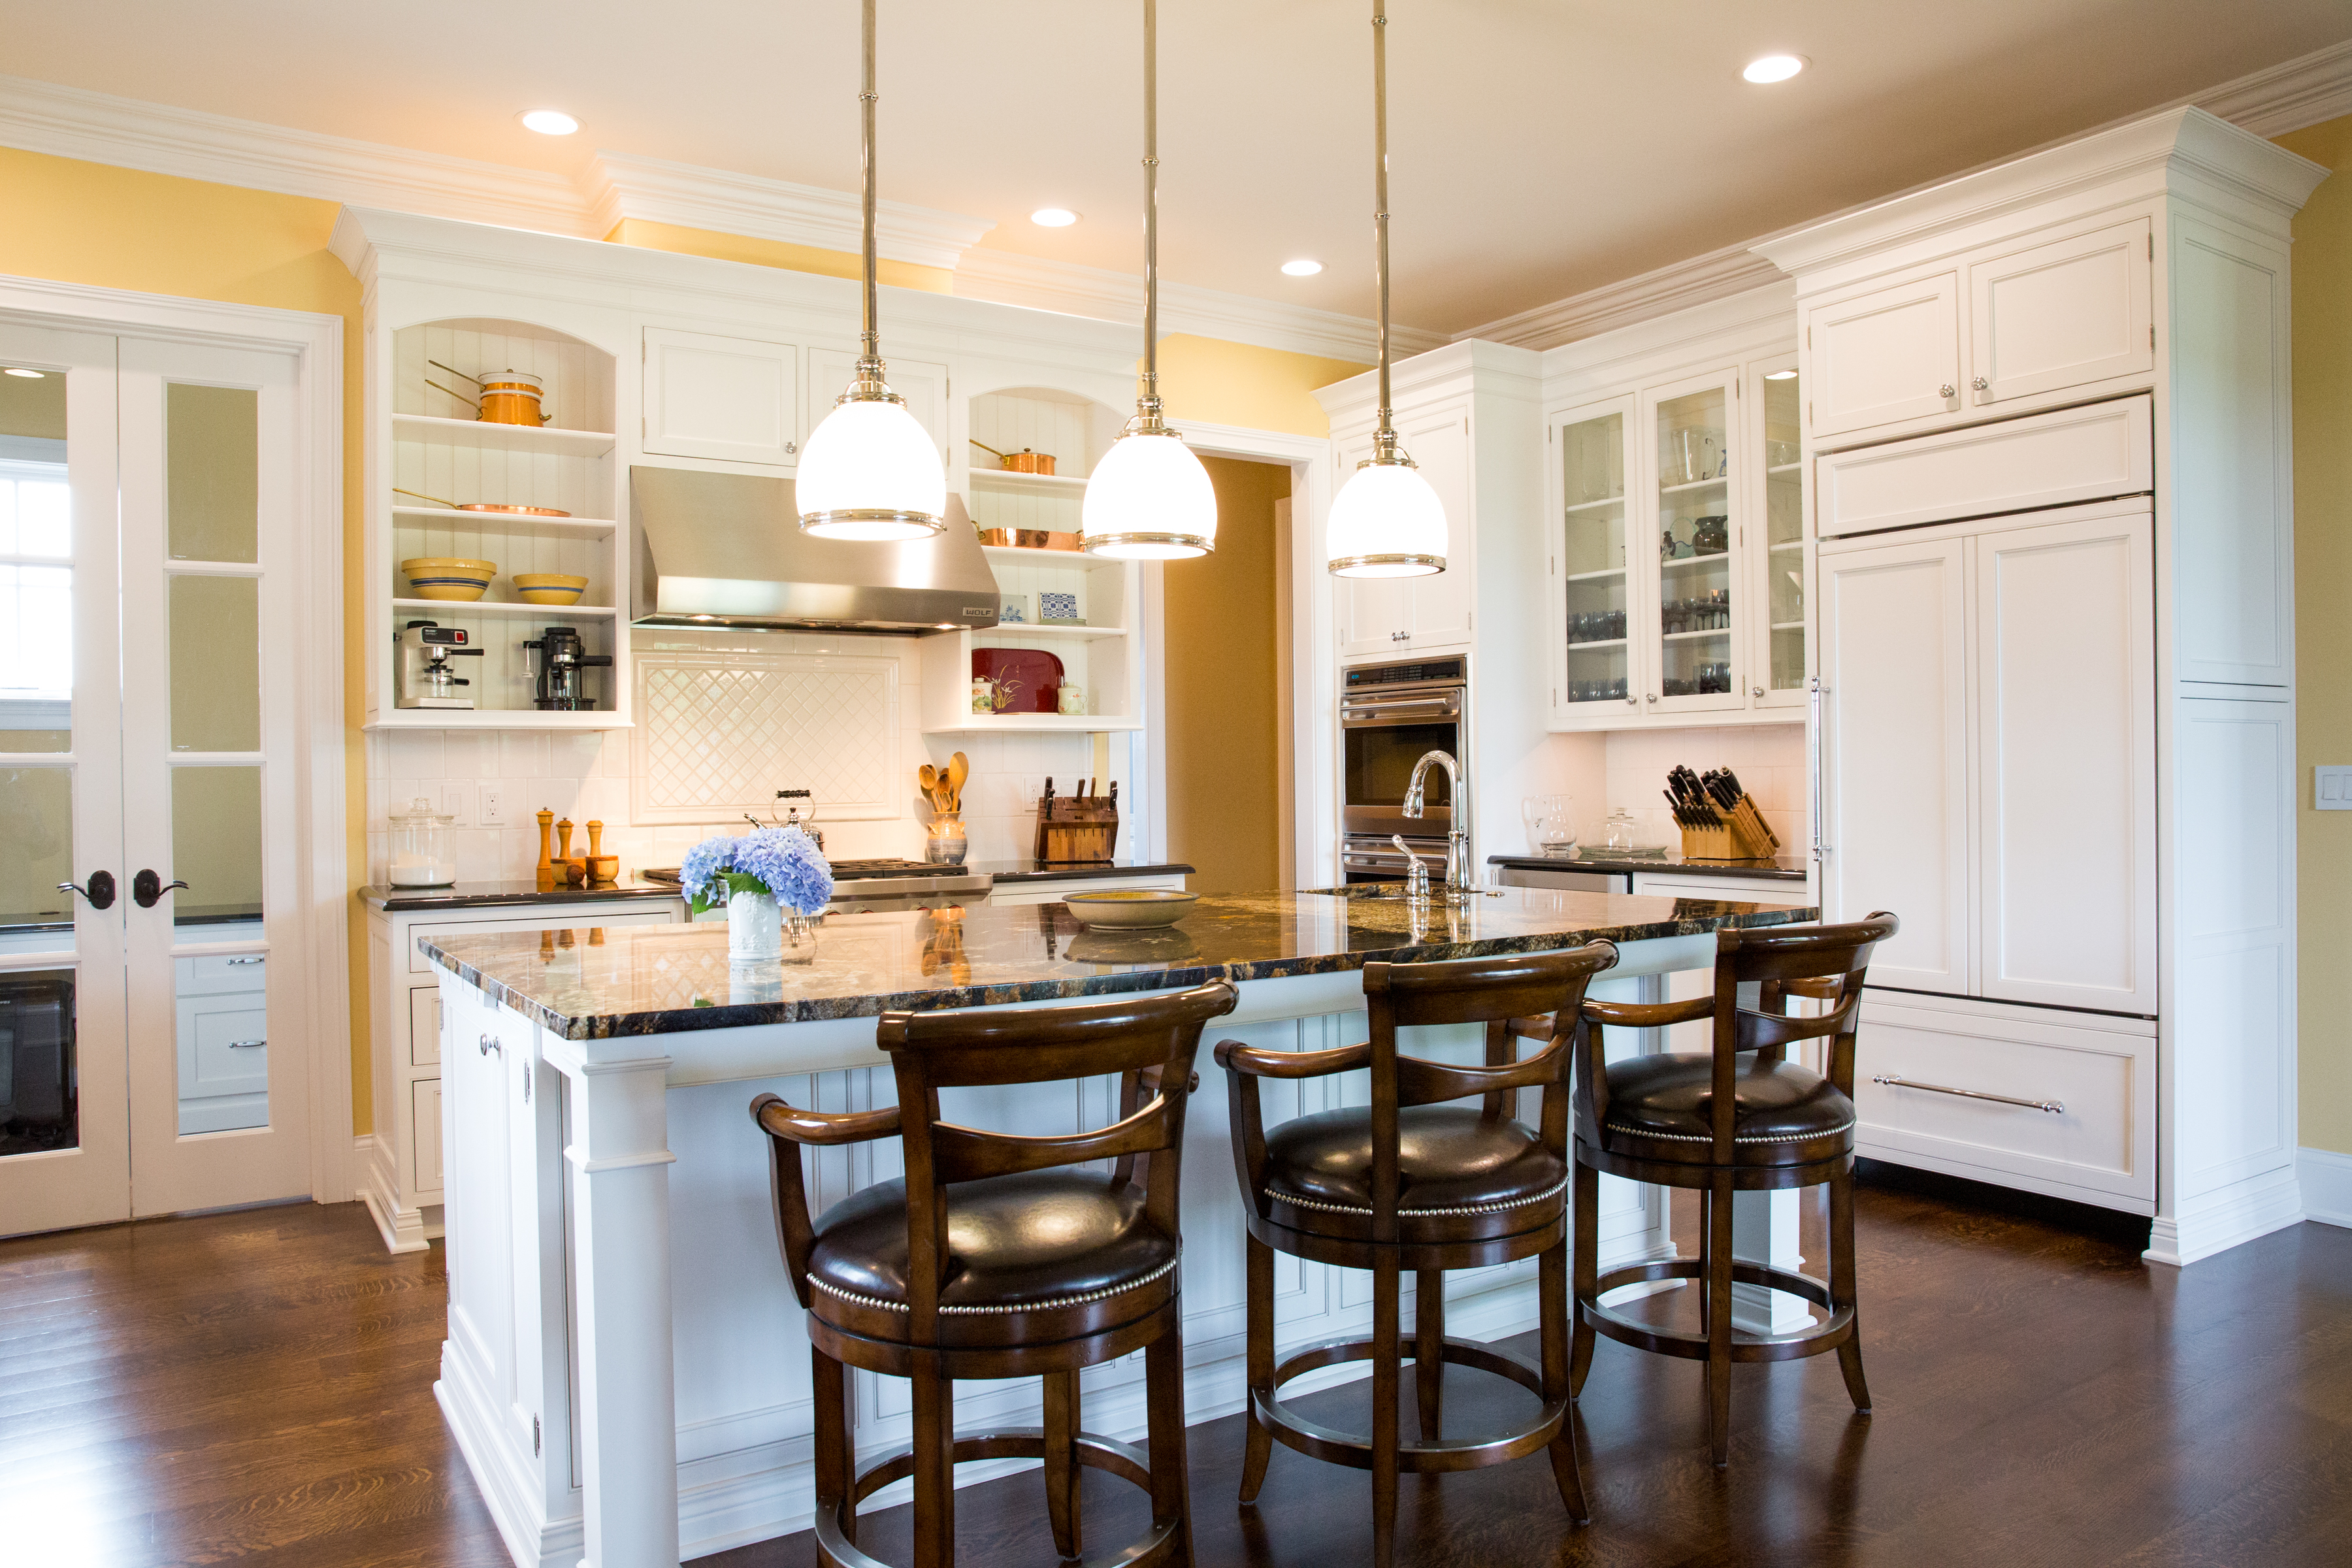 Standard kitchen bath gallery knoxville kitchen for Bathroom remodel knoxville tn